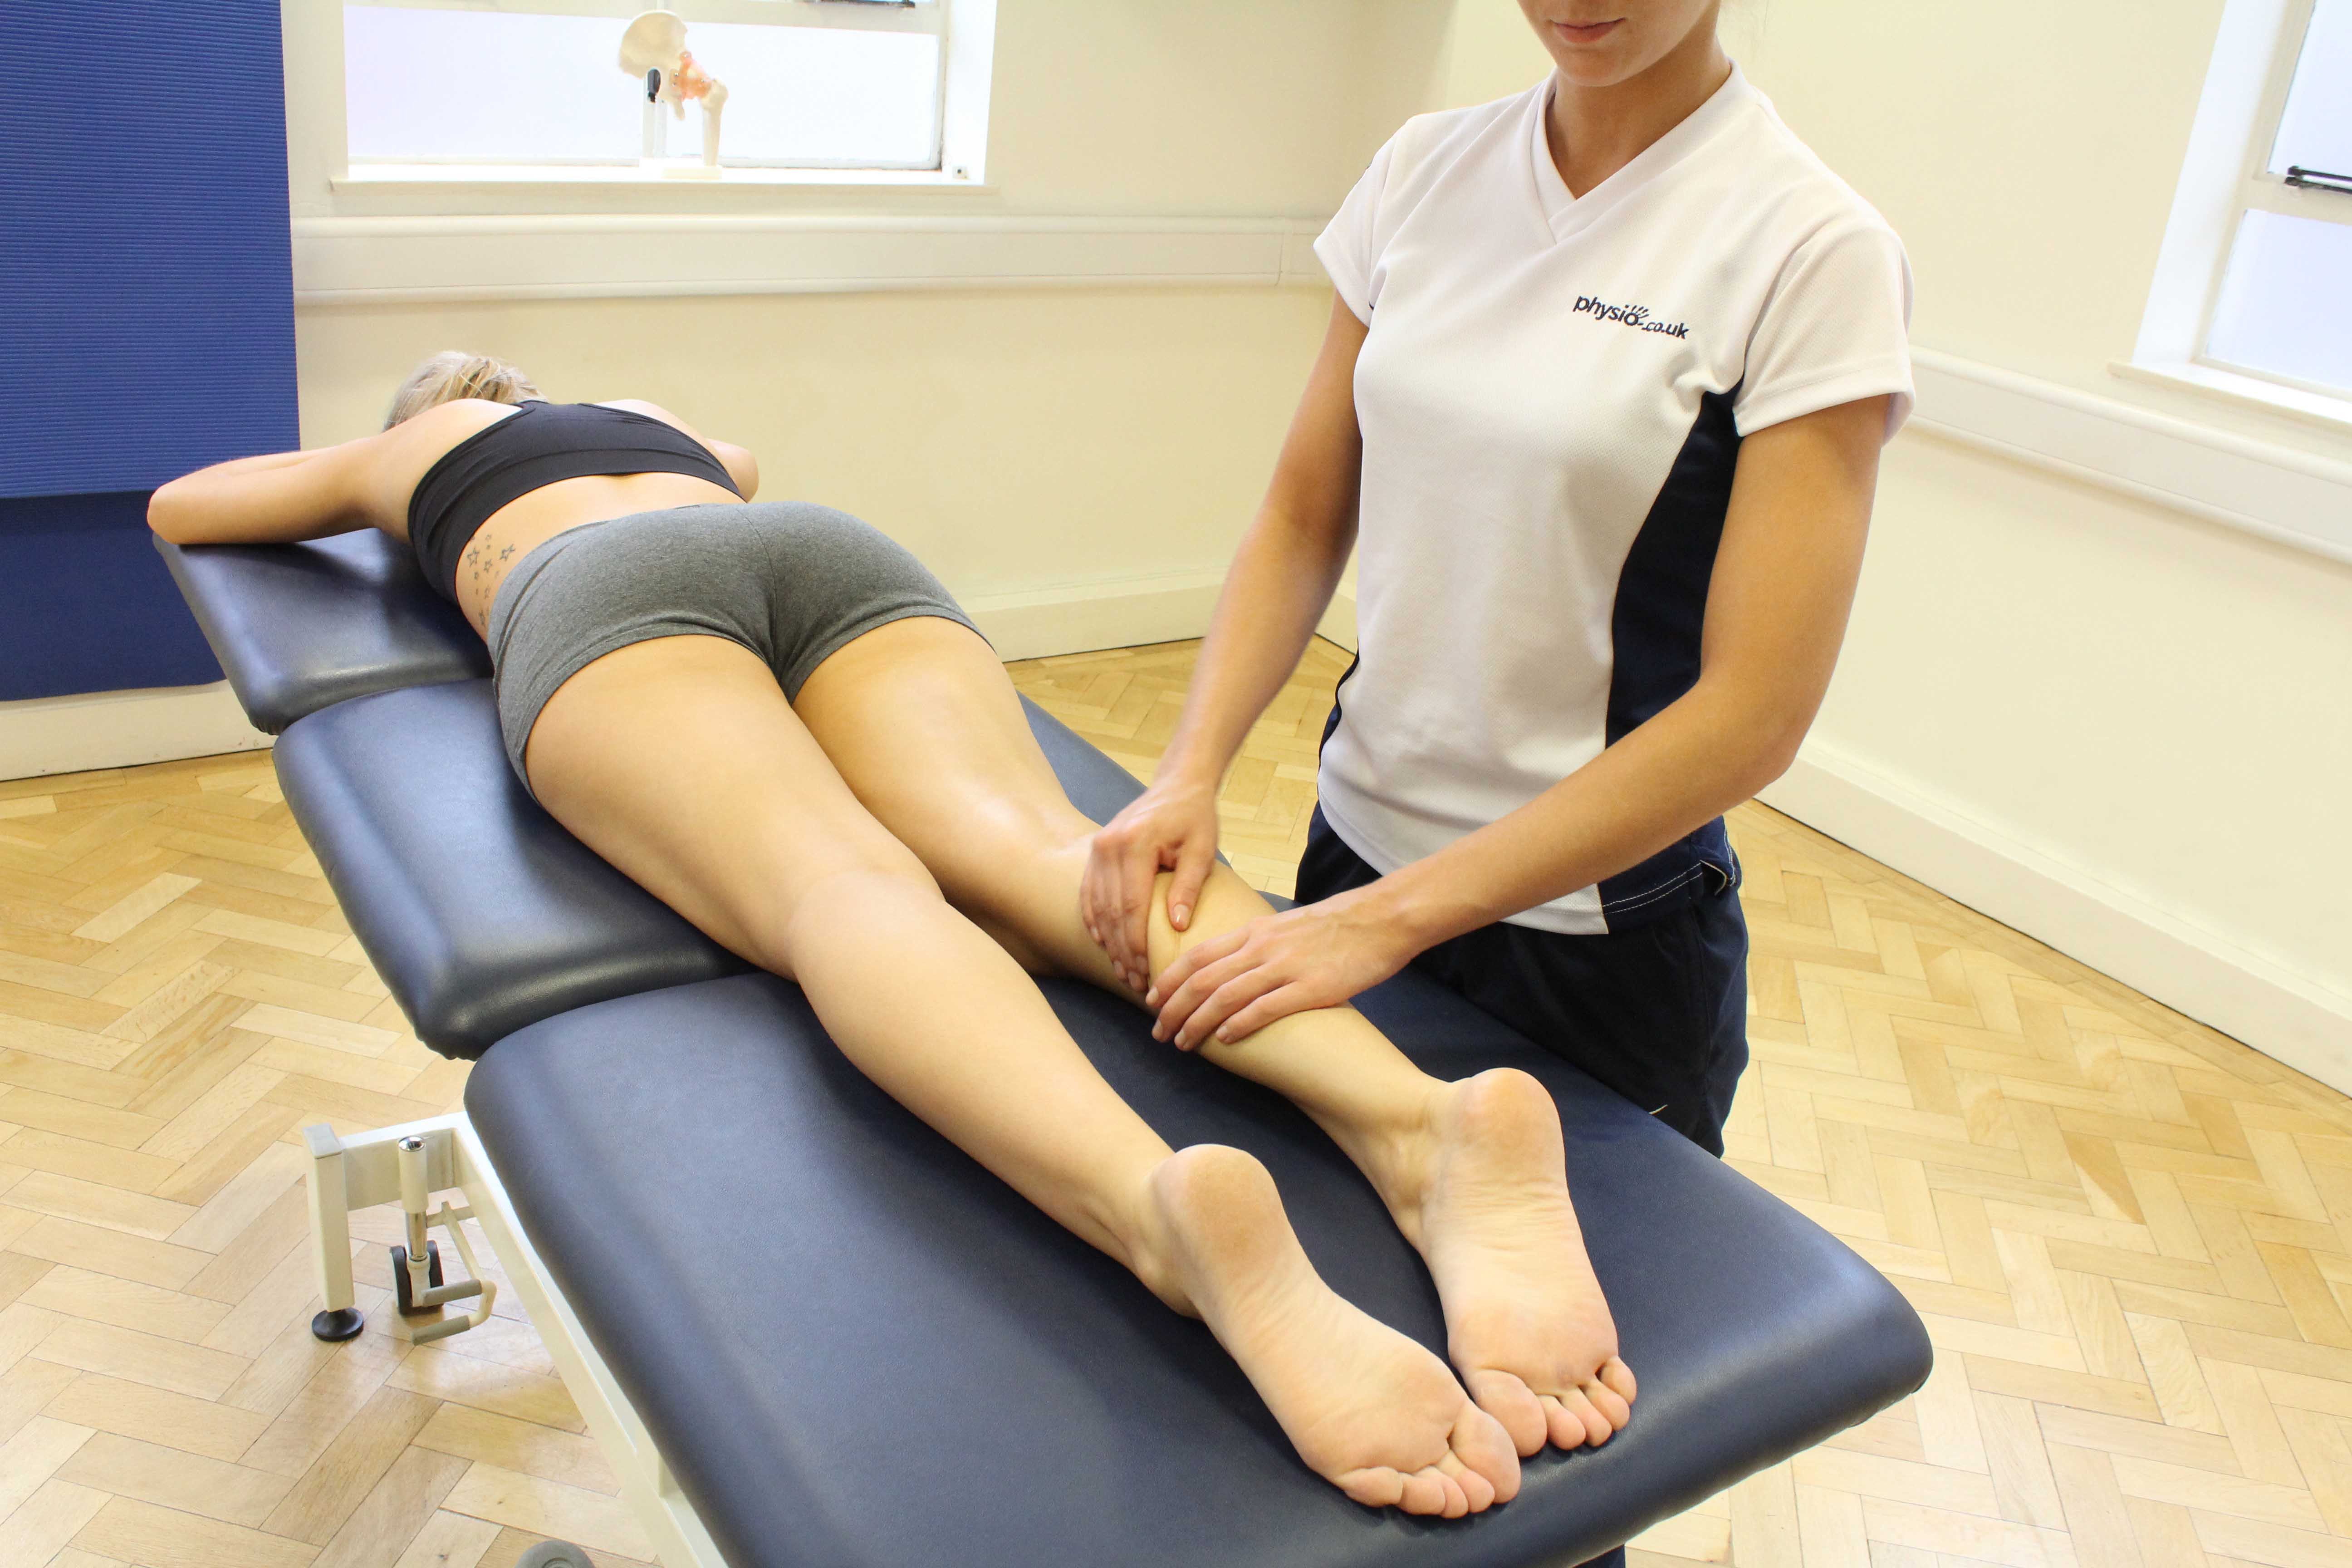 Soft tissue rolling massage technique can improve circulation and break up scar tissue.